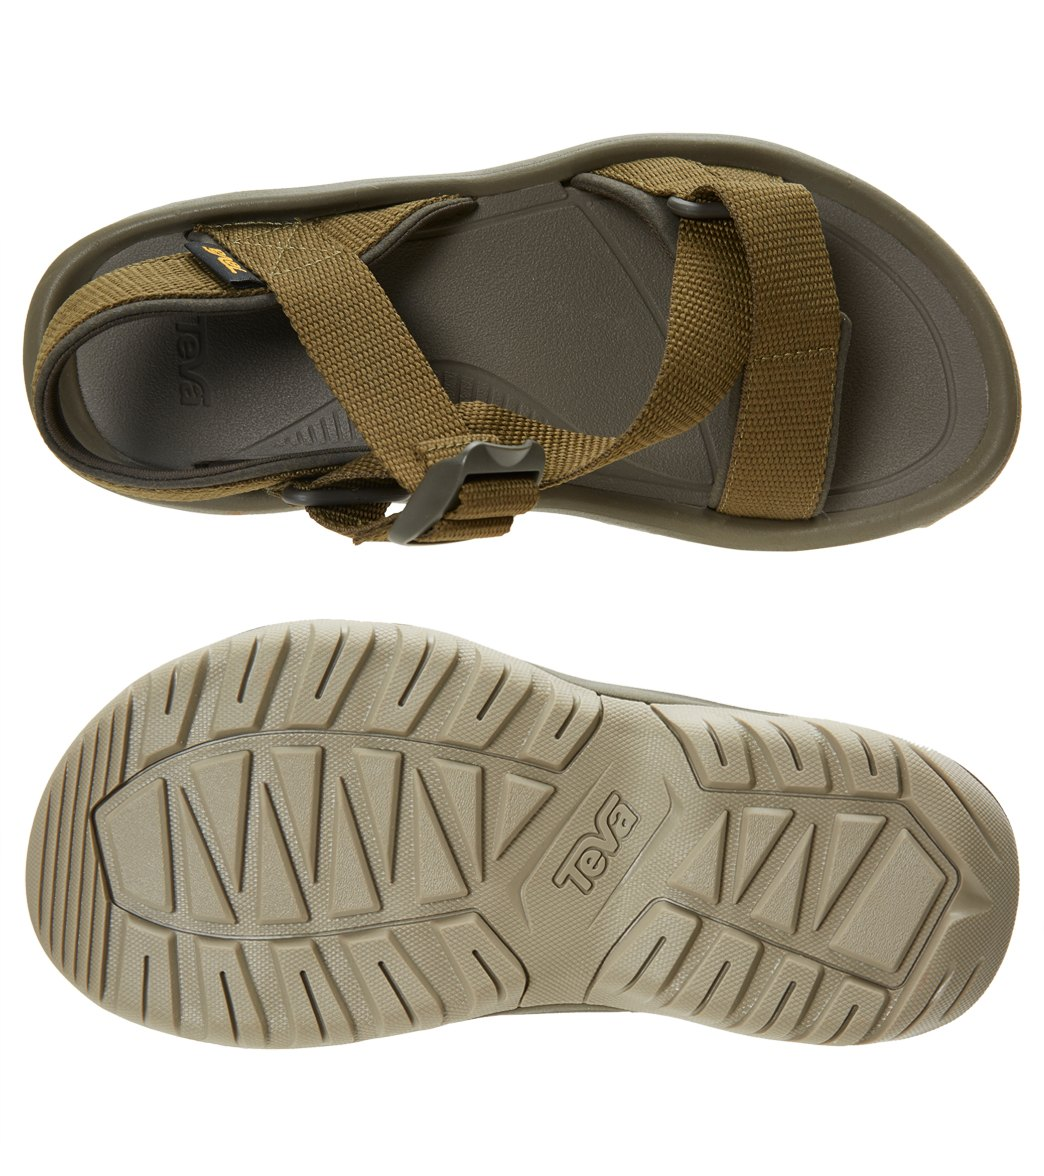 5c6e74799b84 Teva Hurricane Xlt2 Cross Strap Sandal at SwimOutlet.com - Free Shipping